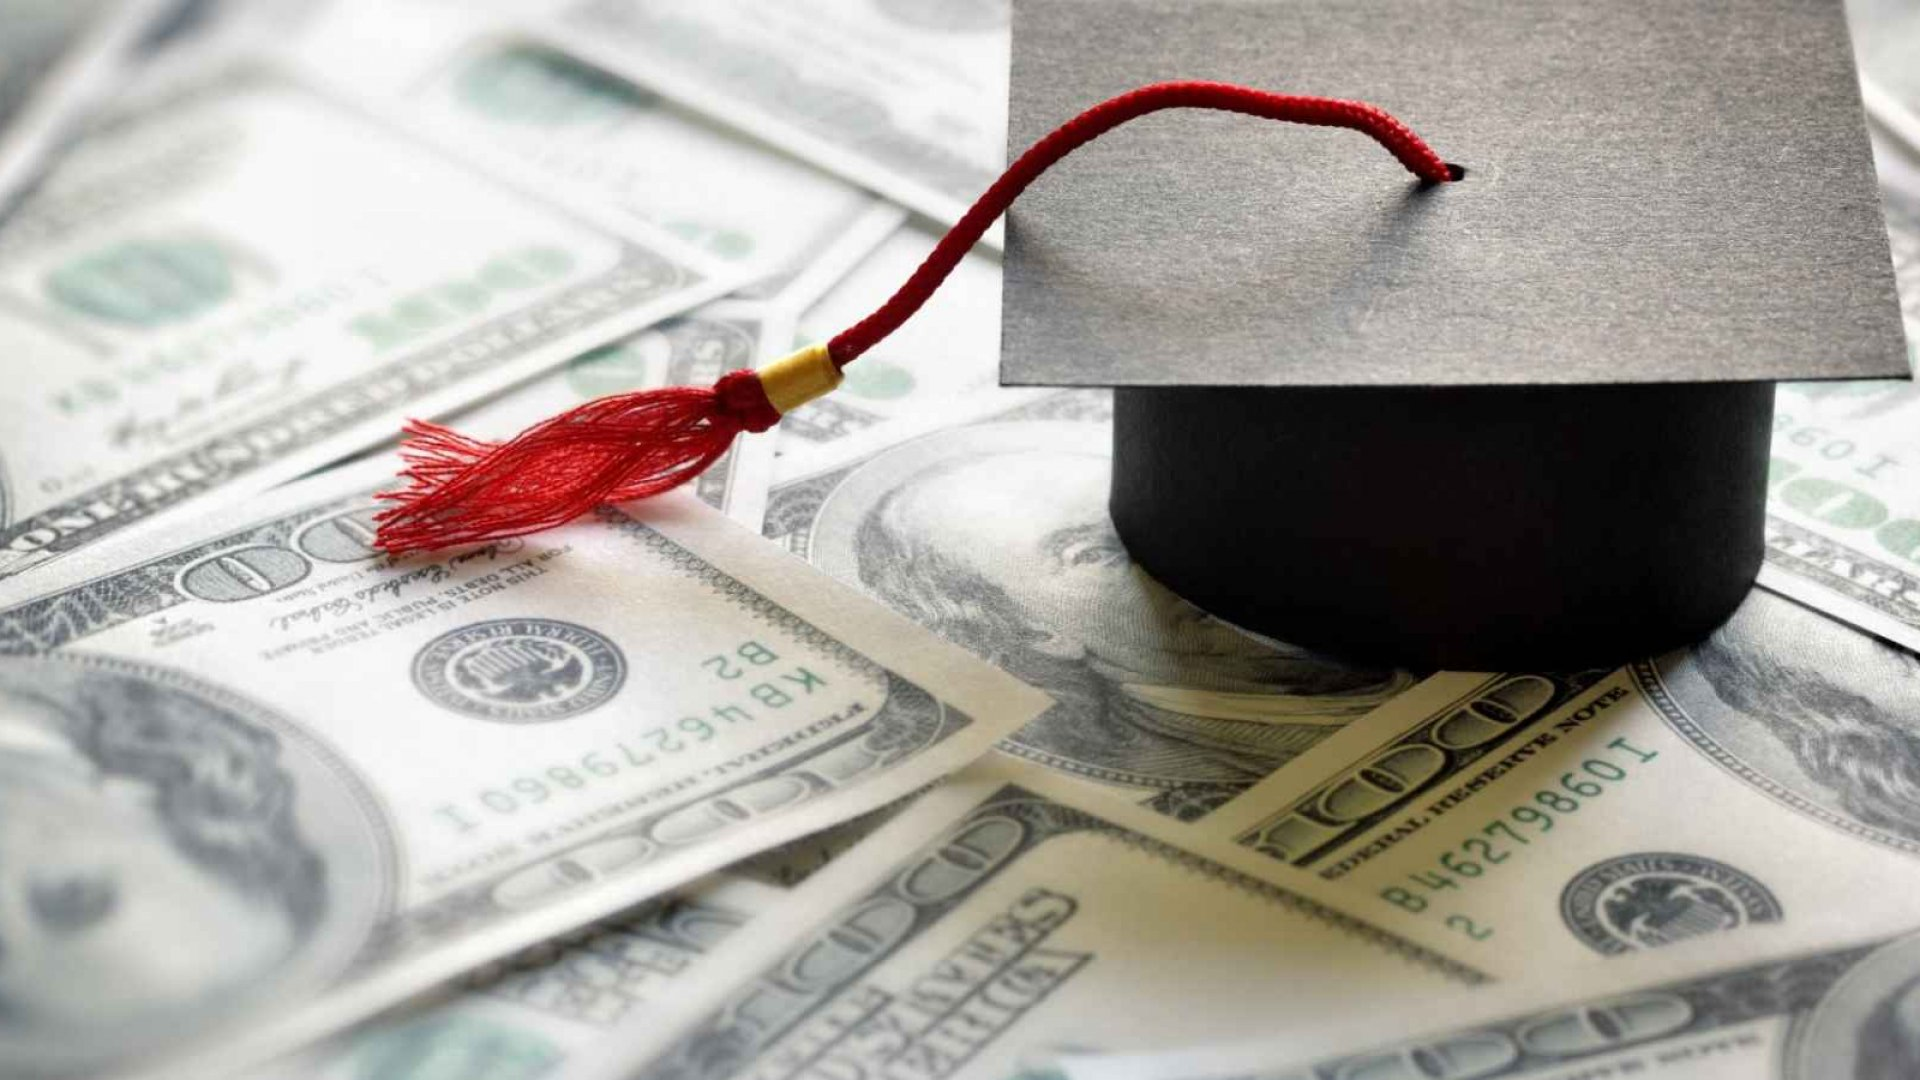 5 Things You Should Know About Student Loan Refinancing